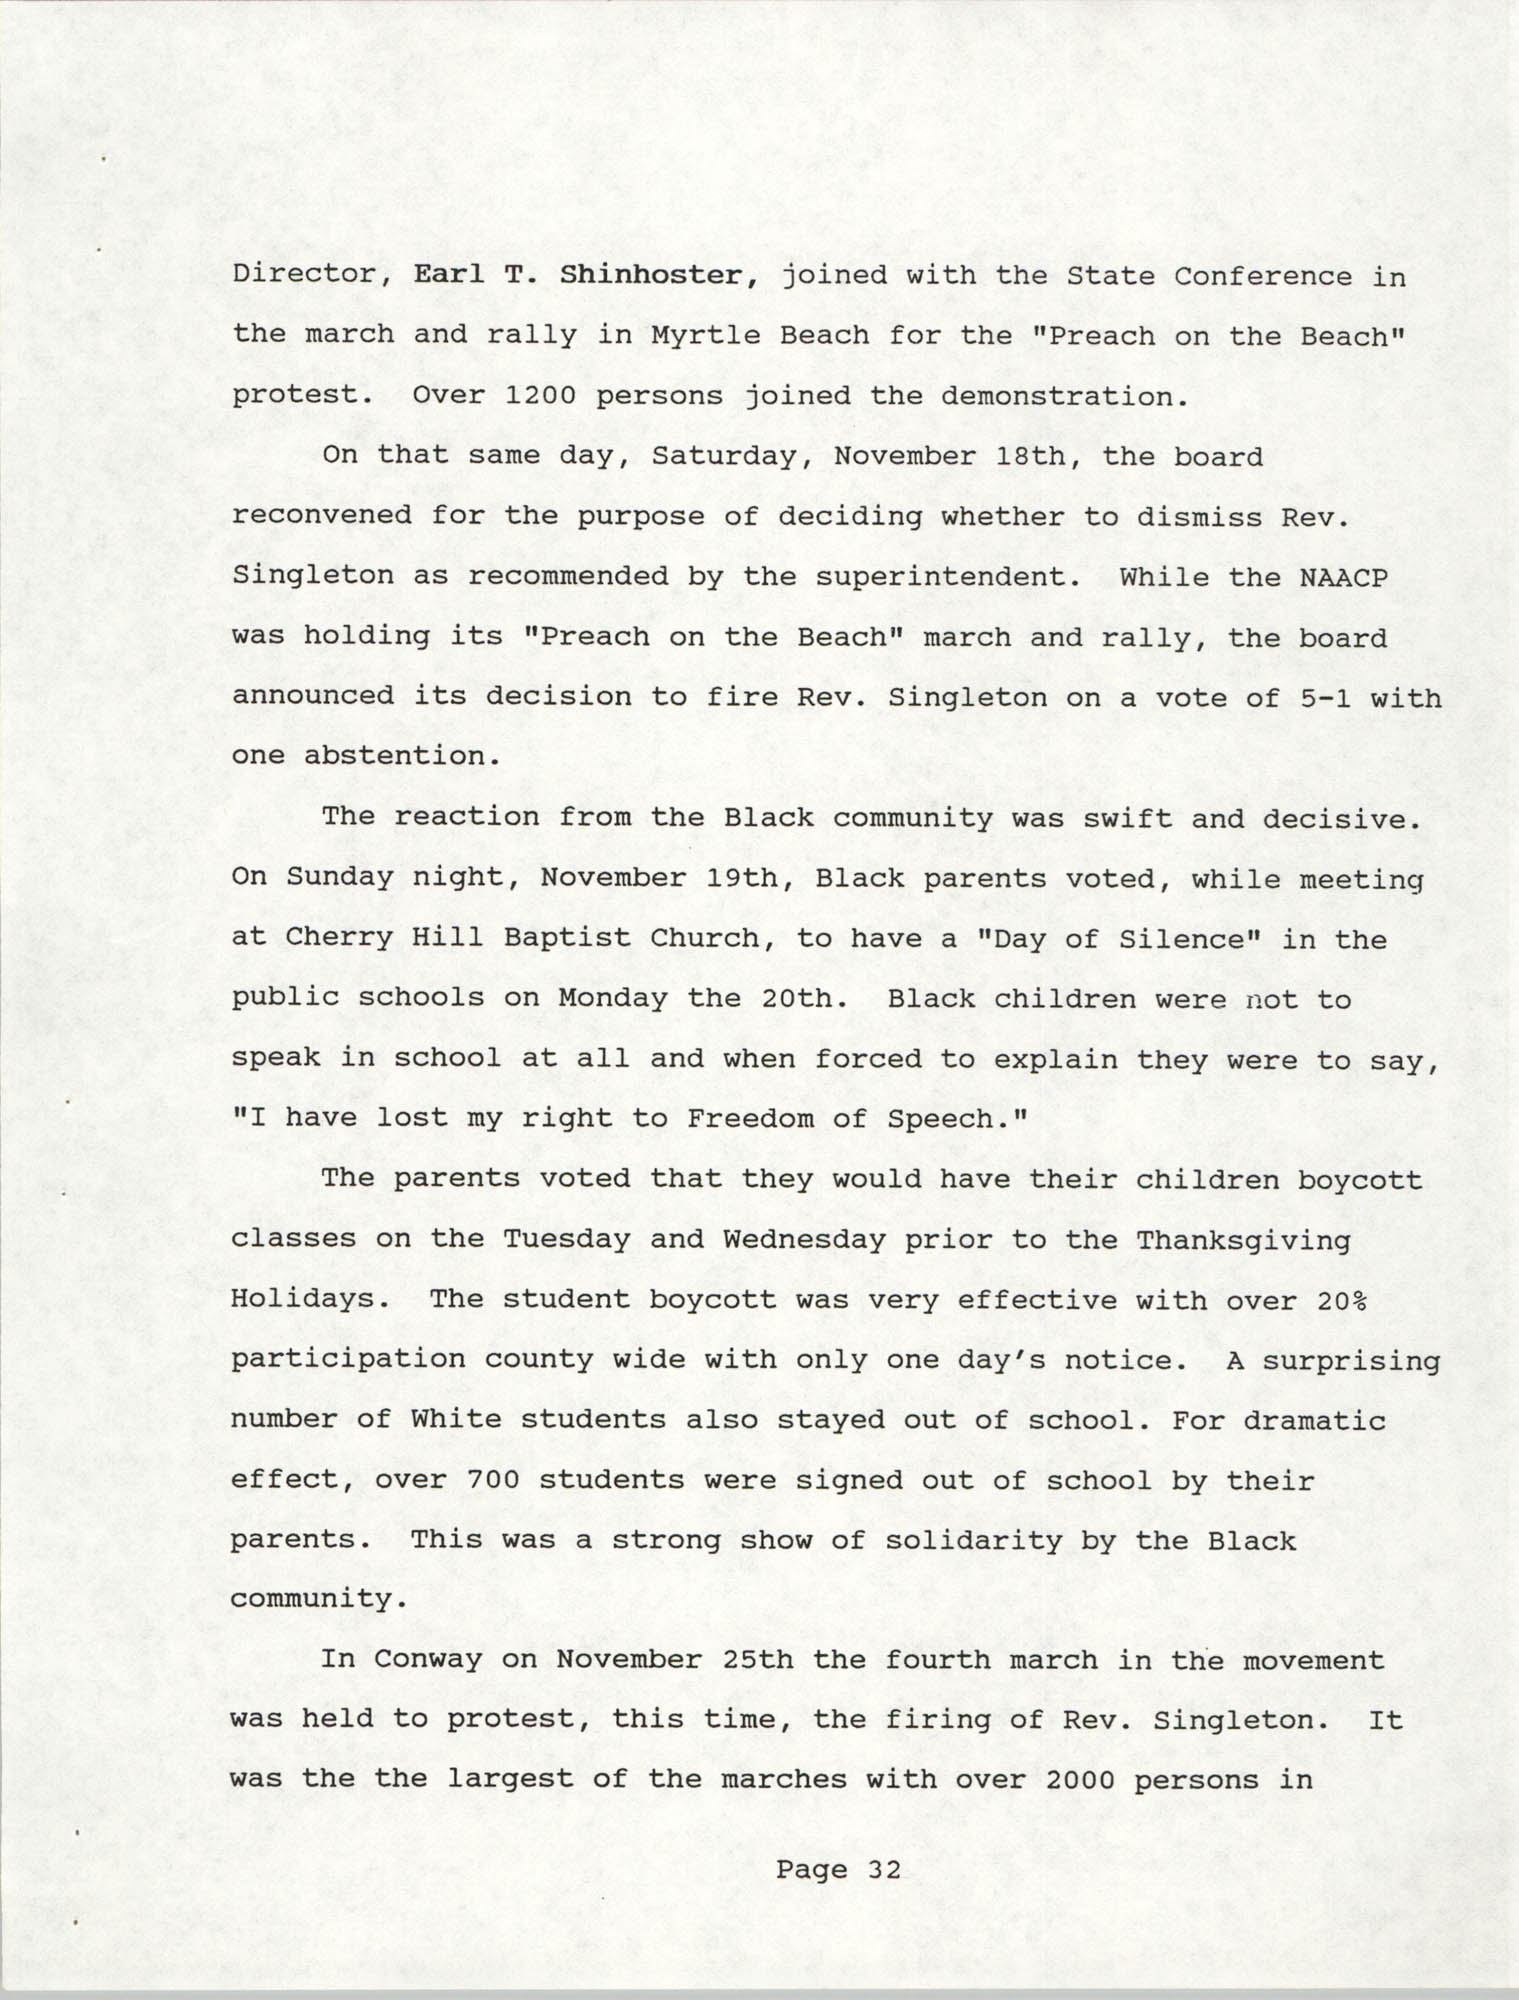 South Carolina Conference of Branches of the NAACP, 1990 Annual Report, Part Two, Page 32